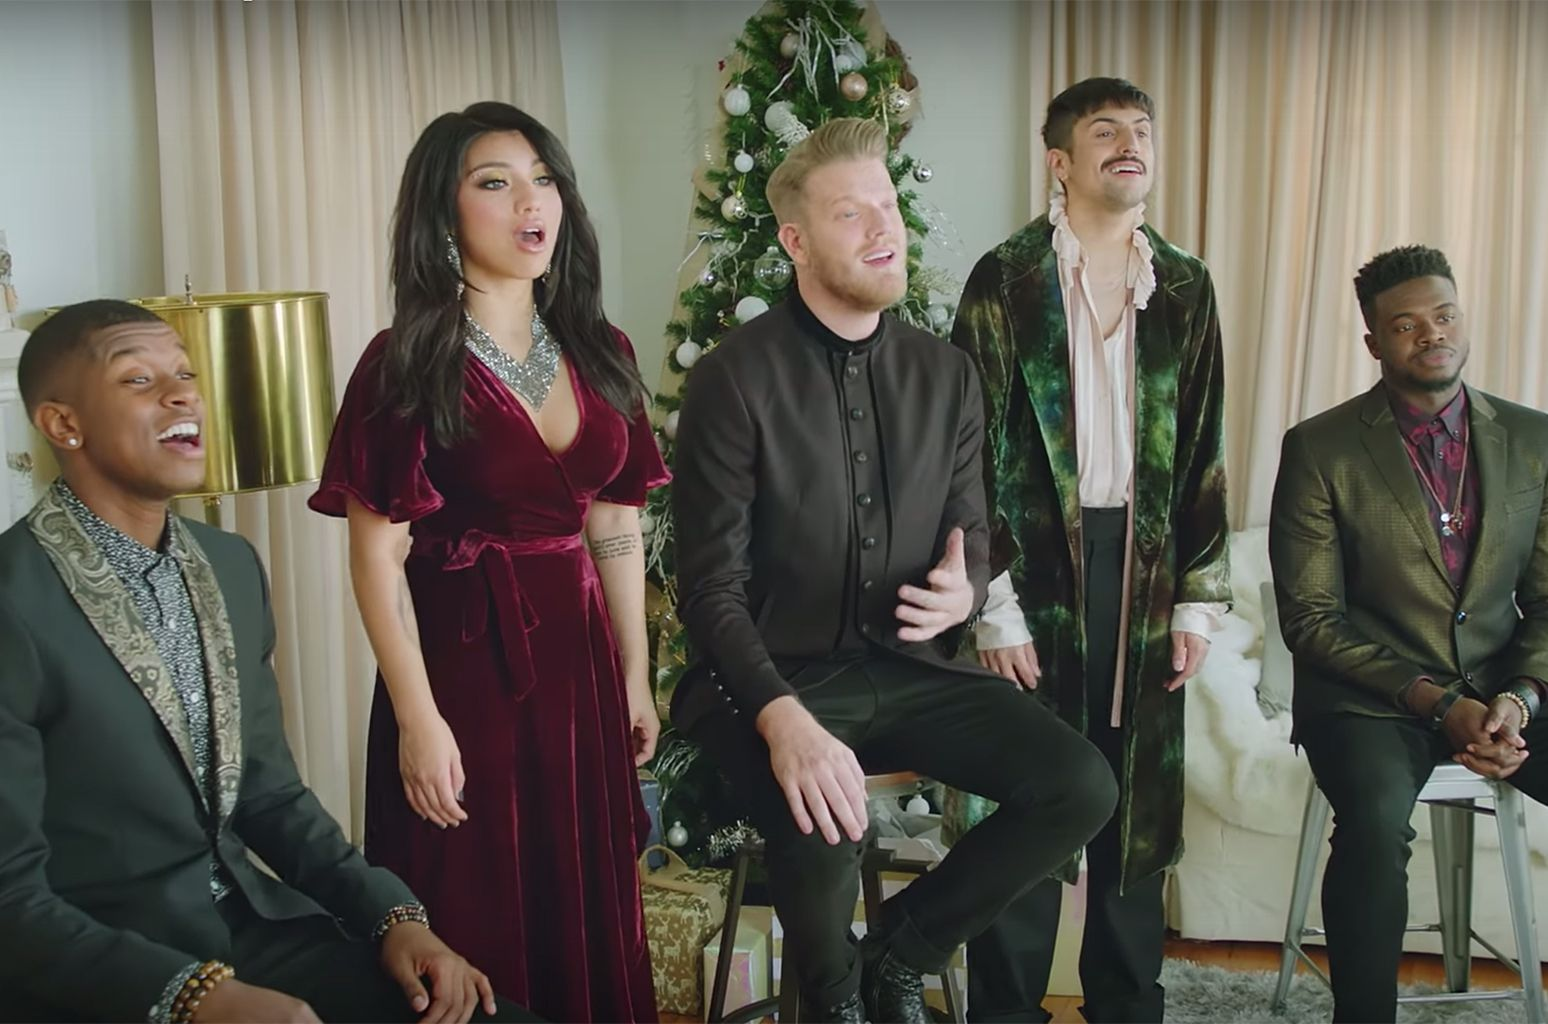 Pentatonix Shares New 'Deck The Halls' Video Ahead of Christmas